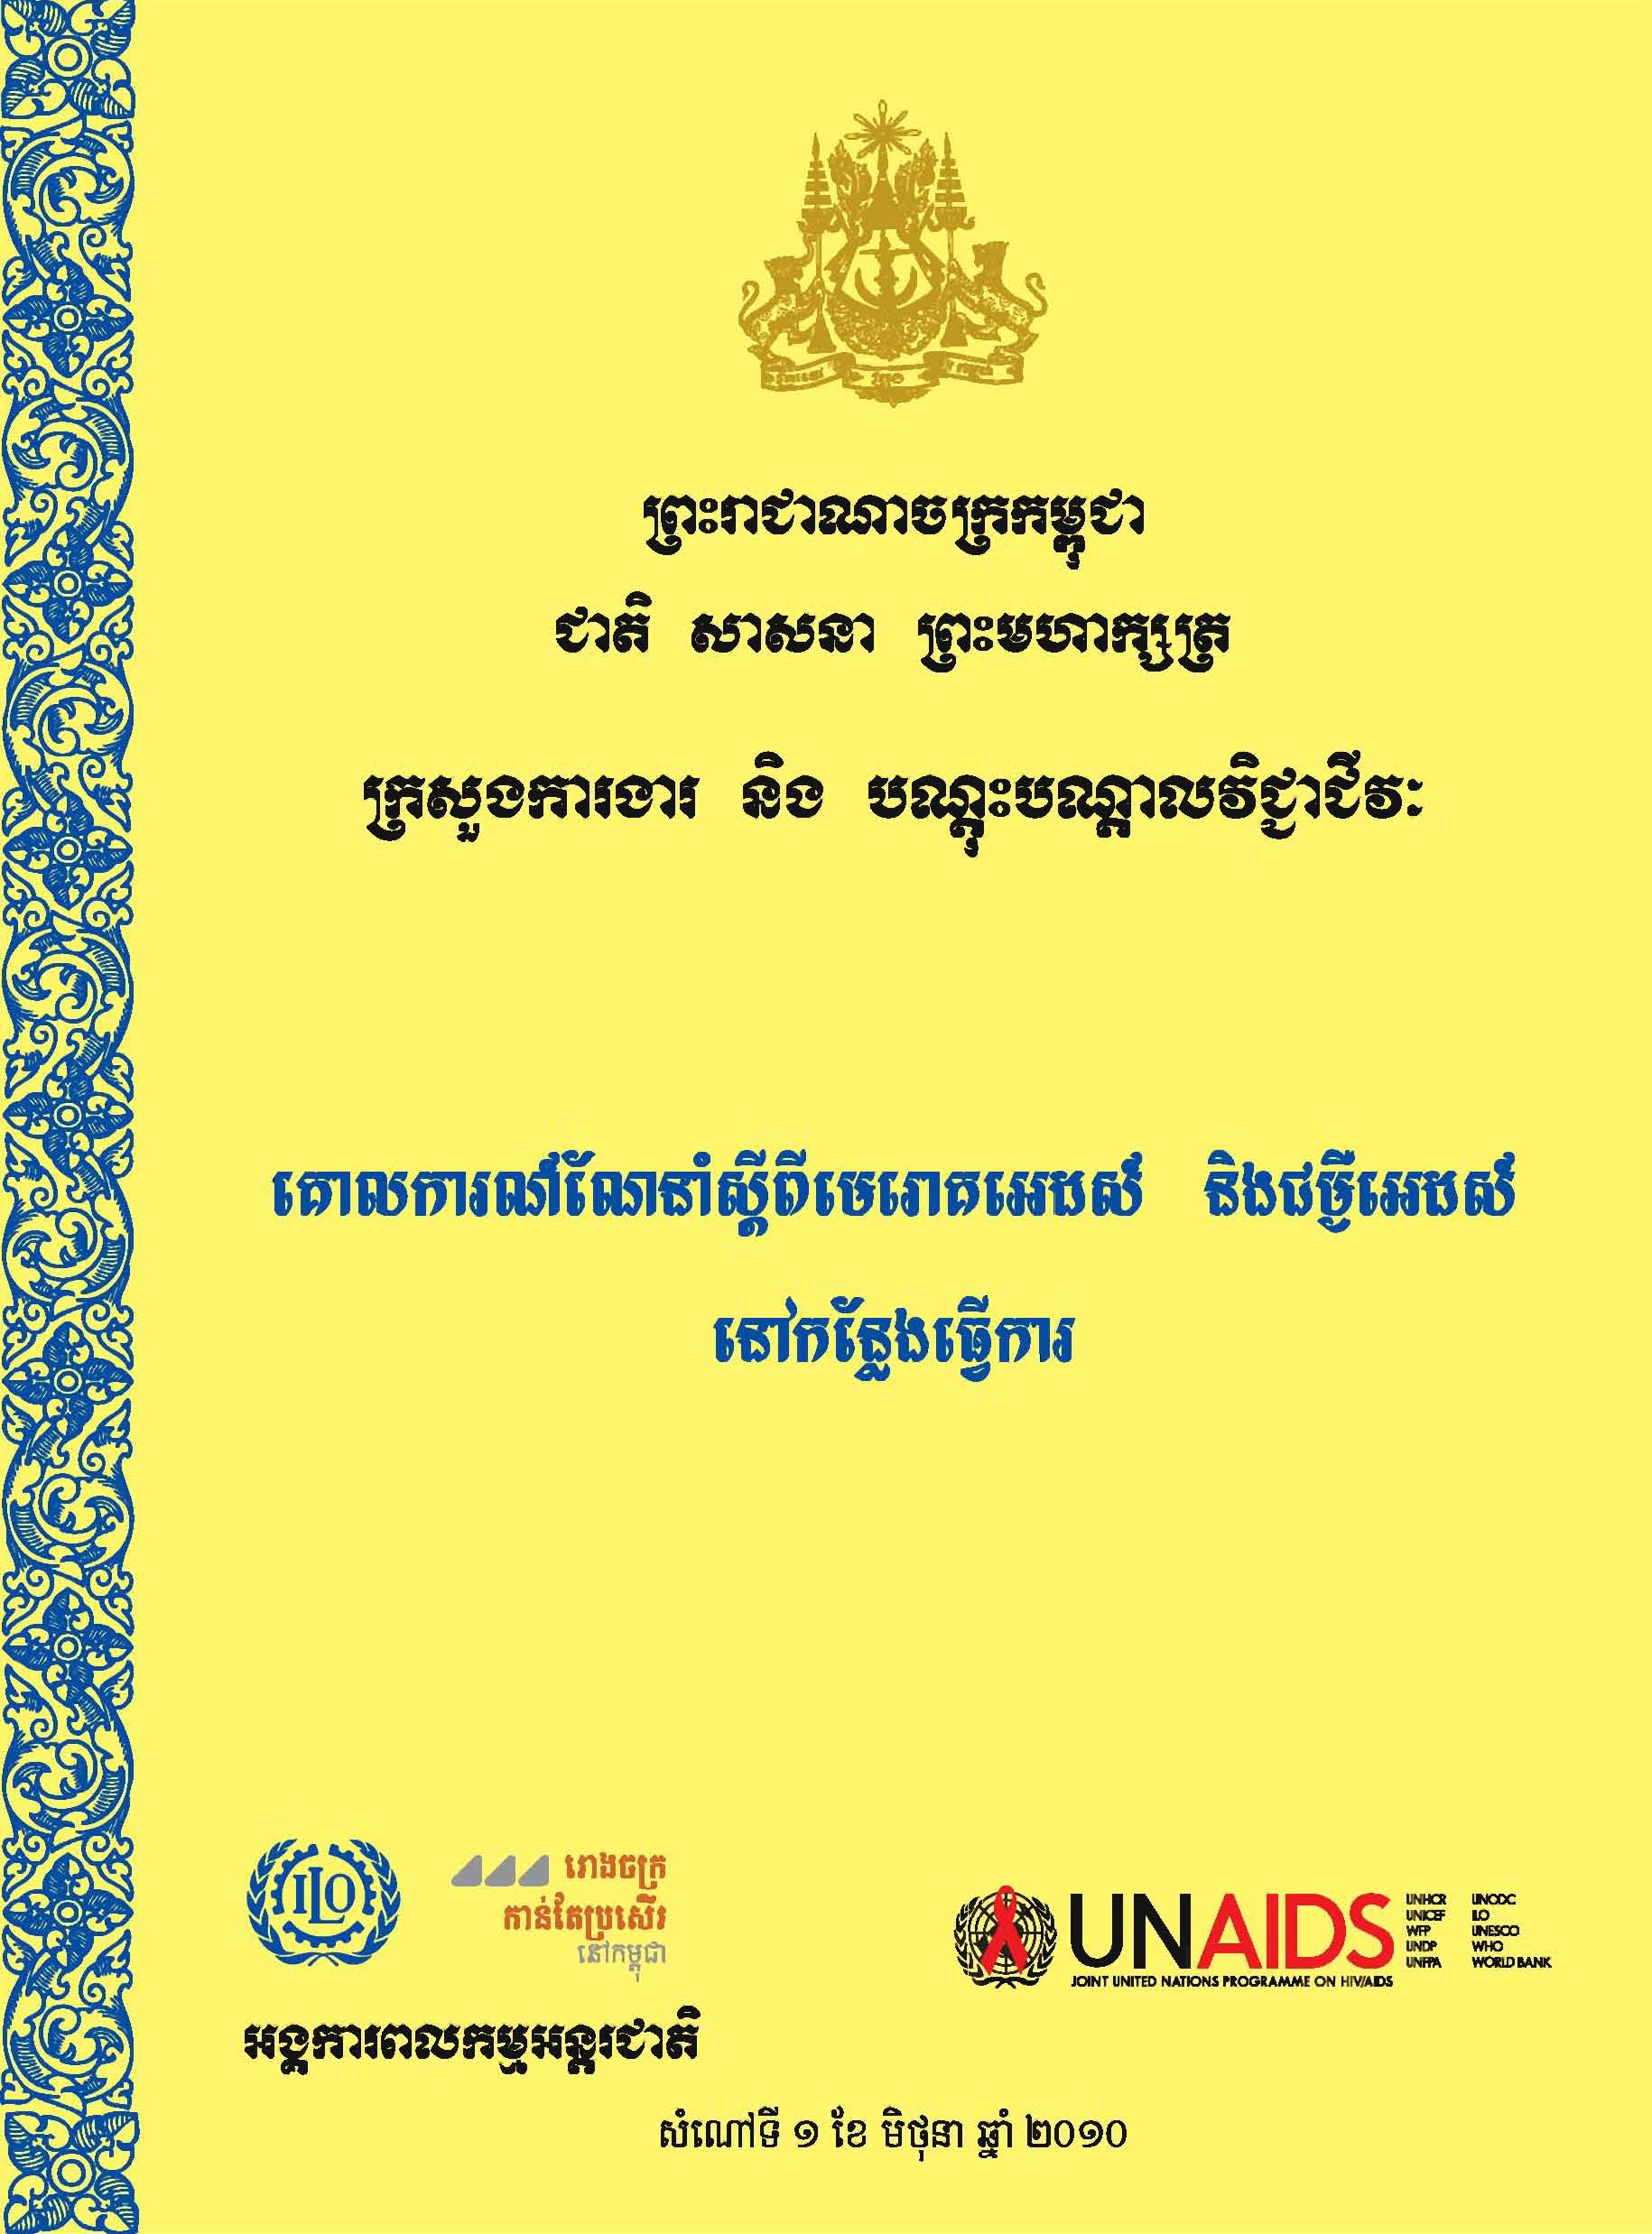 Guidelines on HIV/AIDS in the Workplace (Khmer Language)